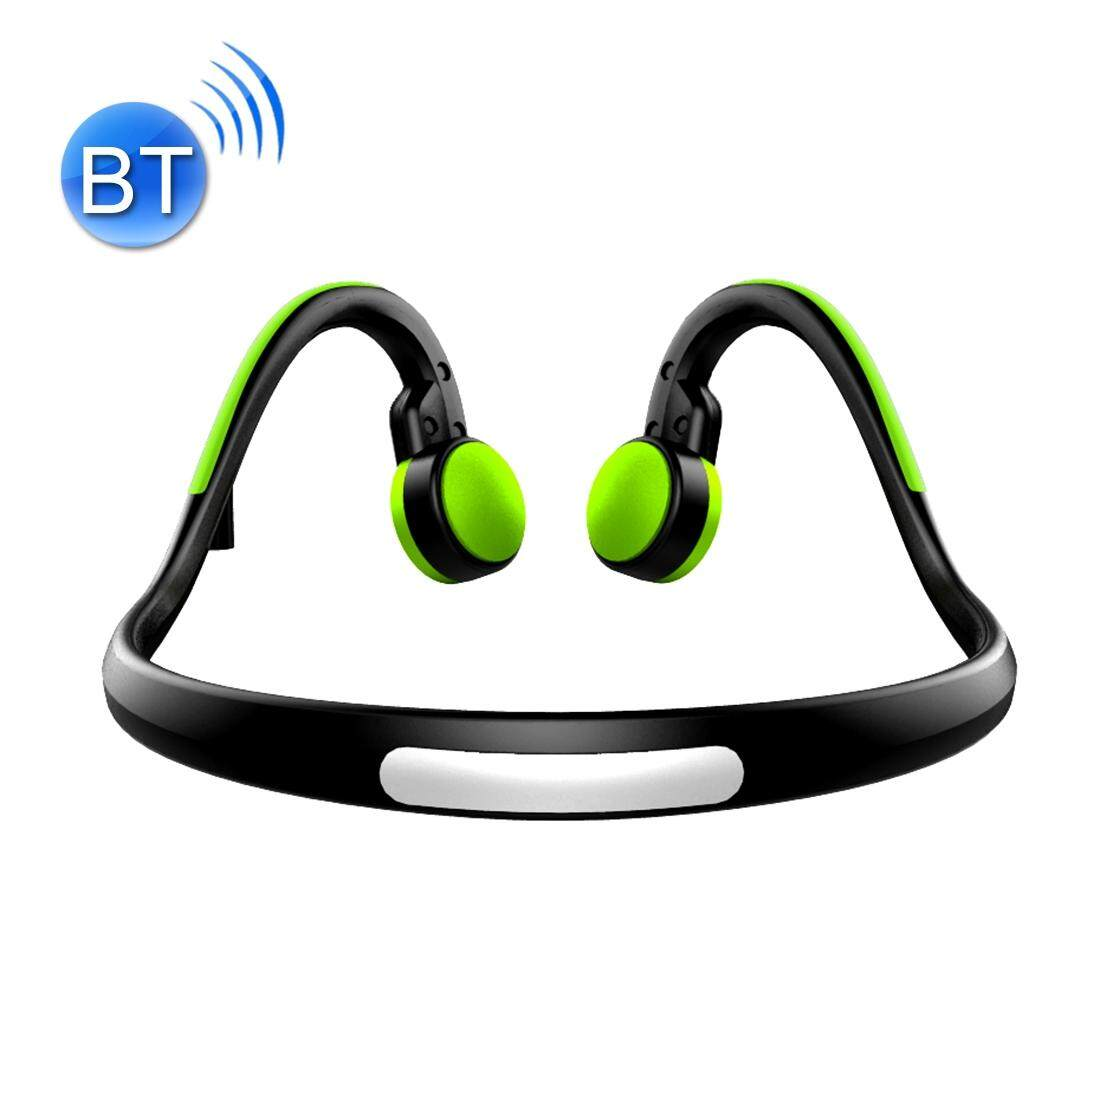 BT-BK Bone Conduction Bluetooth V4.1+EDR Sports Over the Ear Headphone Headset with Mic, For iPhone, Samsung, Huawei, Xiaomi, HTC and Other Smart Phones or Other Bluetooth Audio Devices(Green)